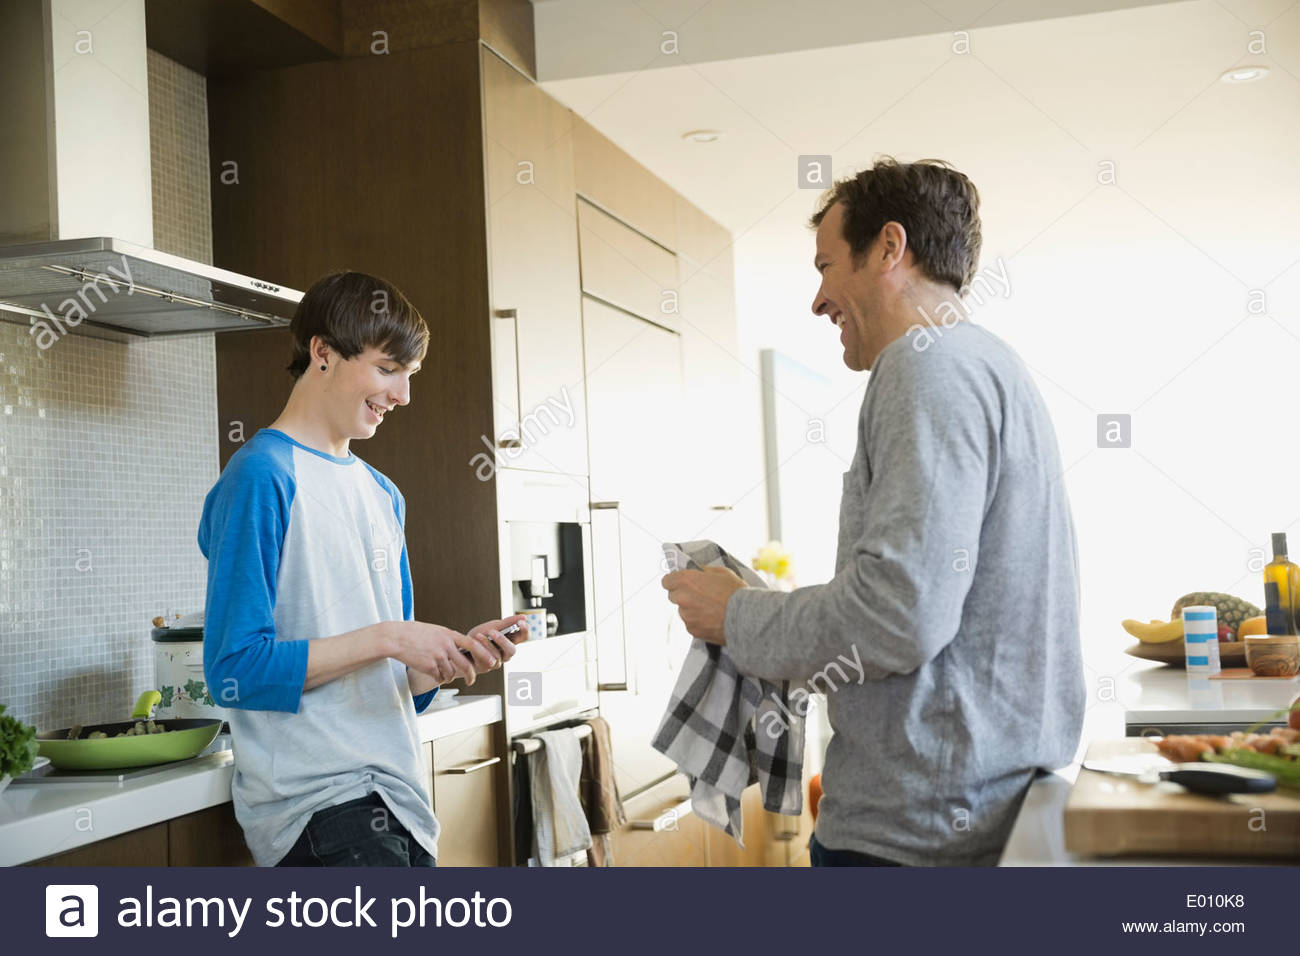 Father and son talking in kitchen - Stock Image